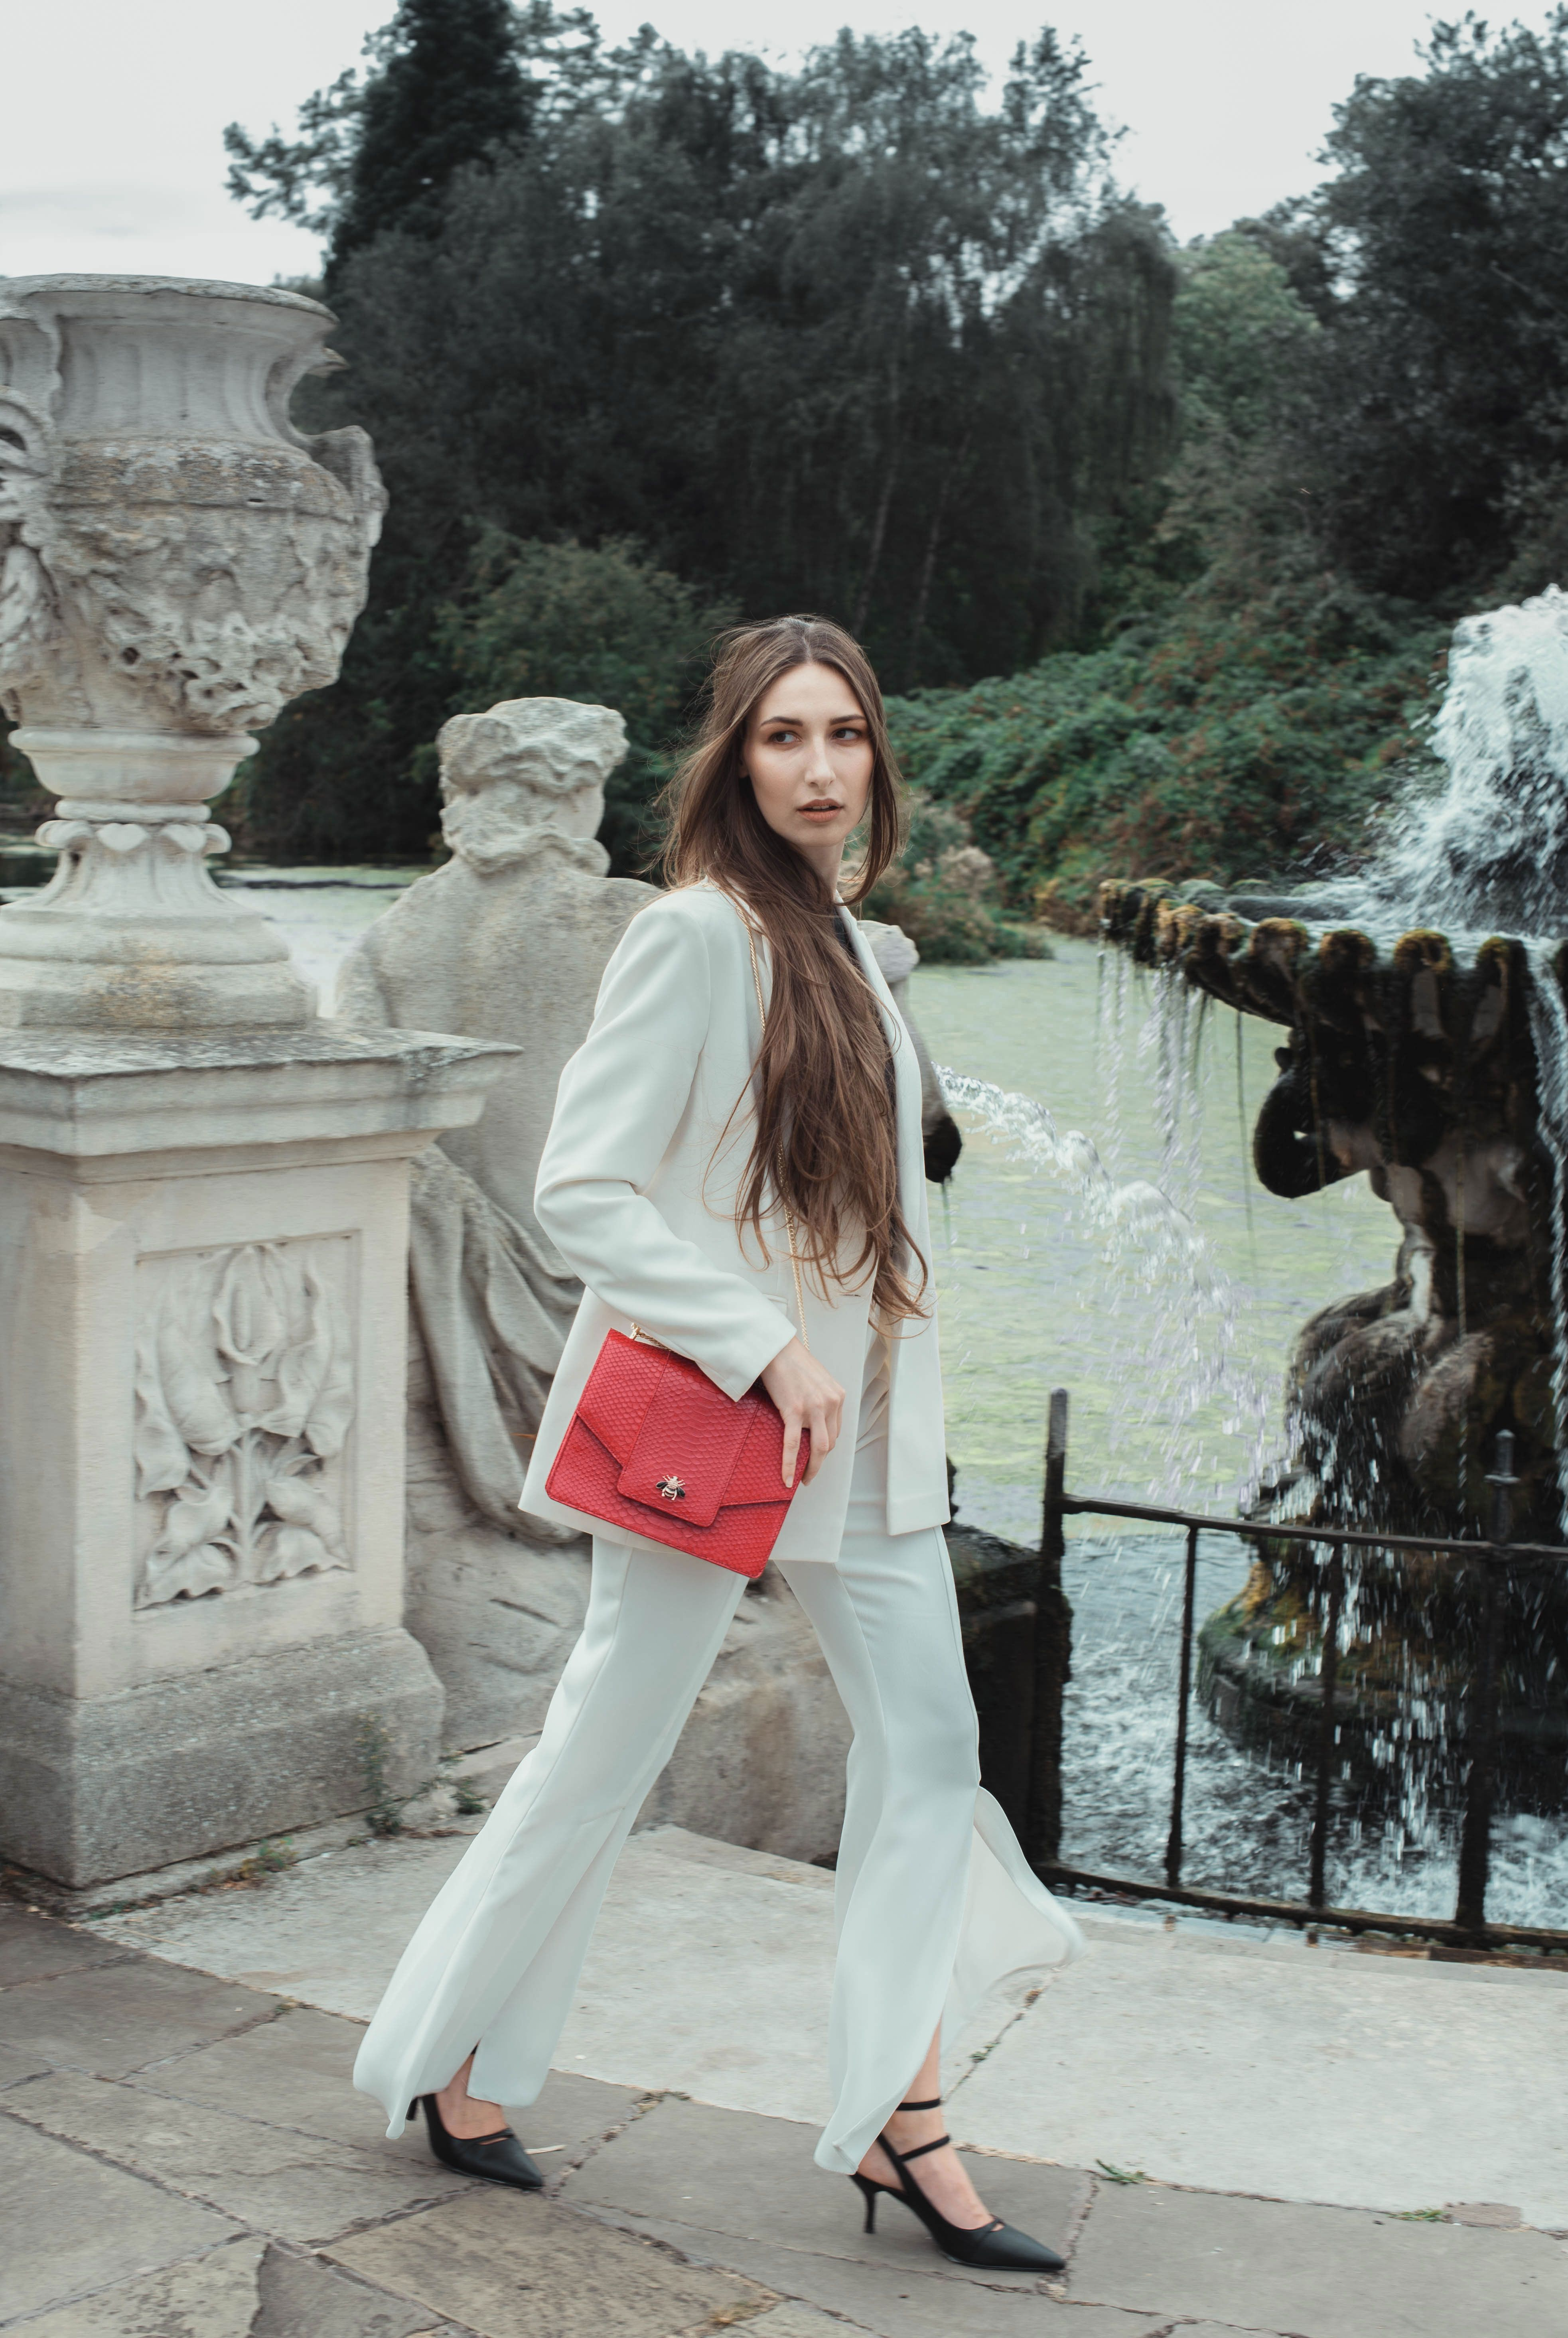 Victoria Chi walks with the iconic Empress handbag in red python leather £1,500, 24x17x6 cm. www.vicacustom.com. Picture-Olegas Daghool. Styling-Leisel Vella. M